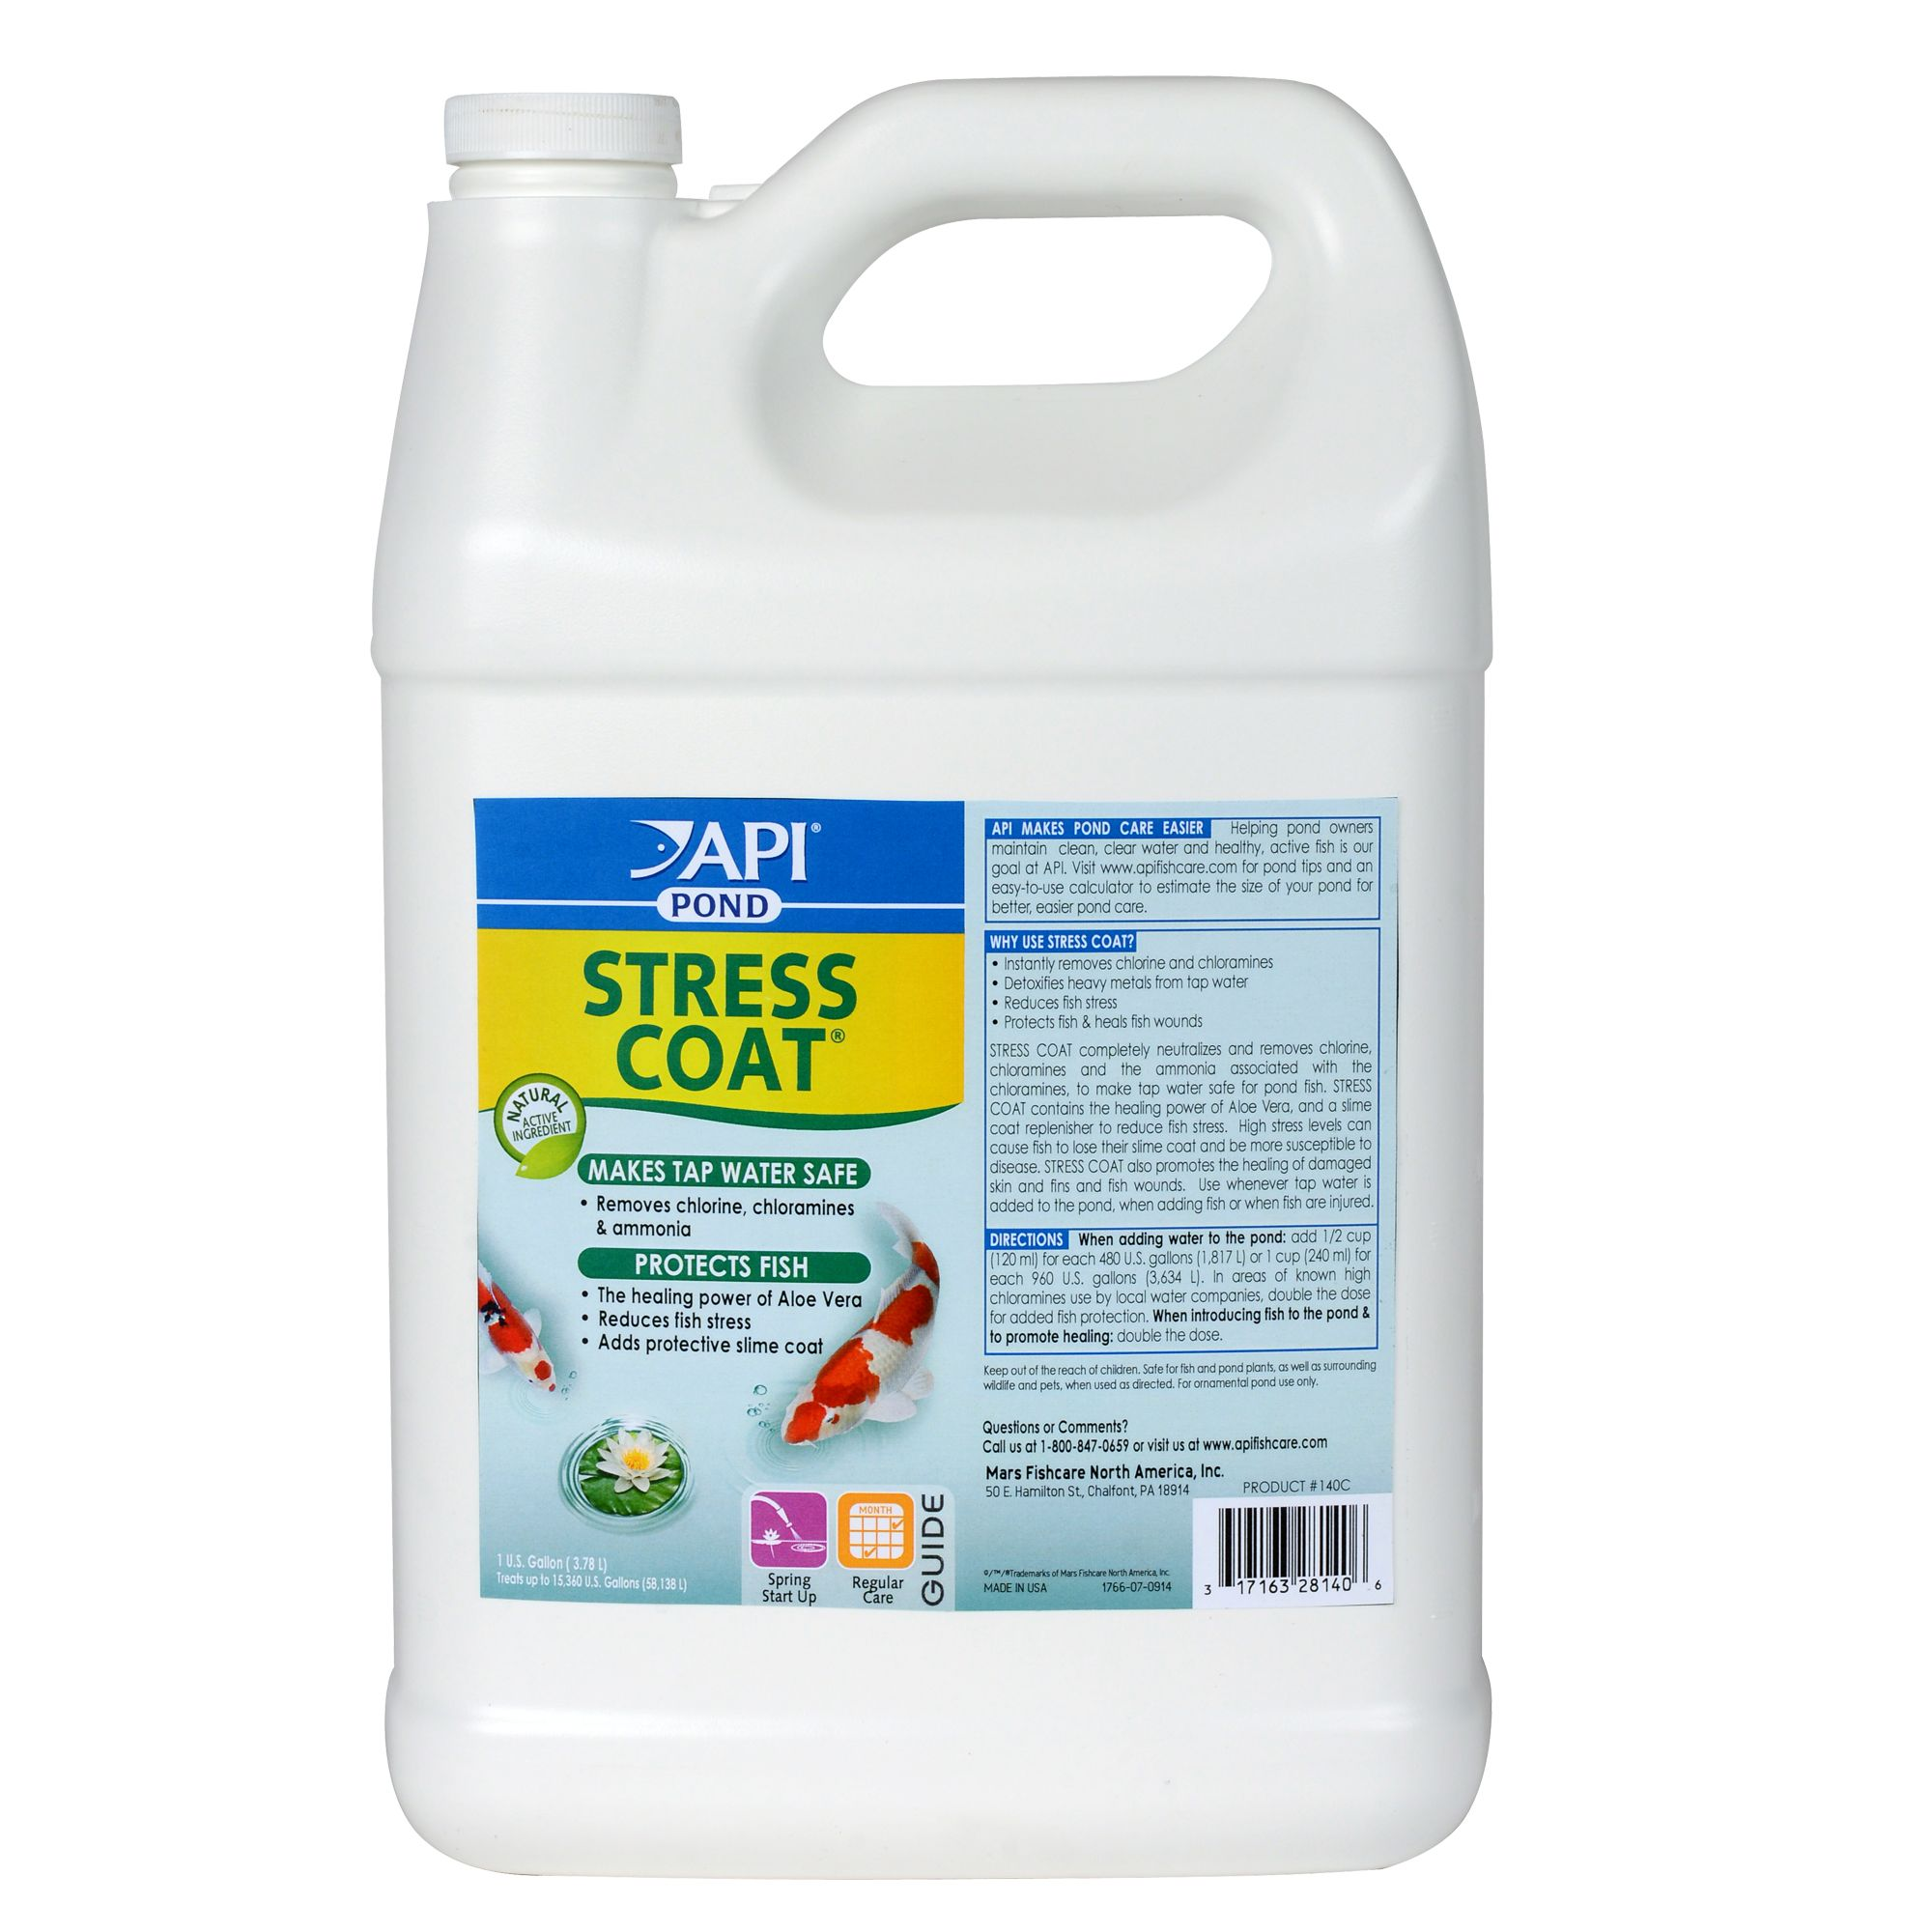 Api Pond Stress Coat size: 1 Gal